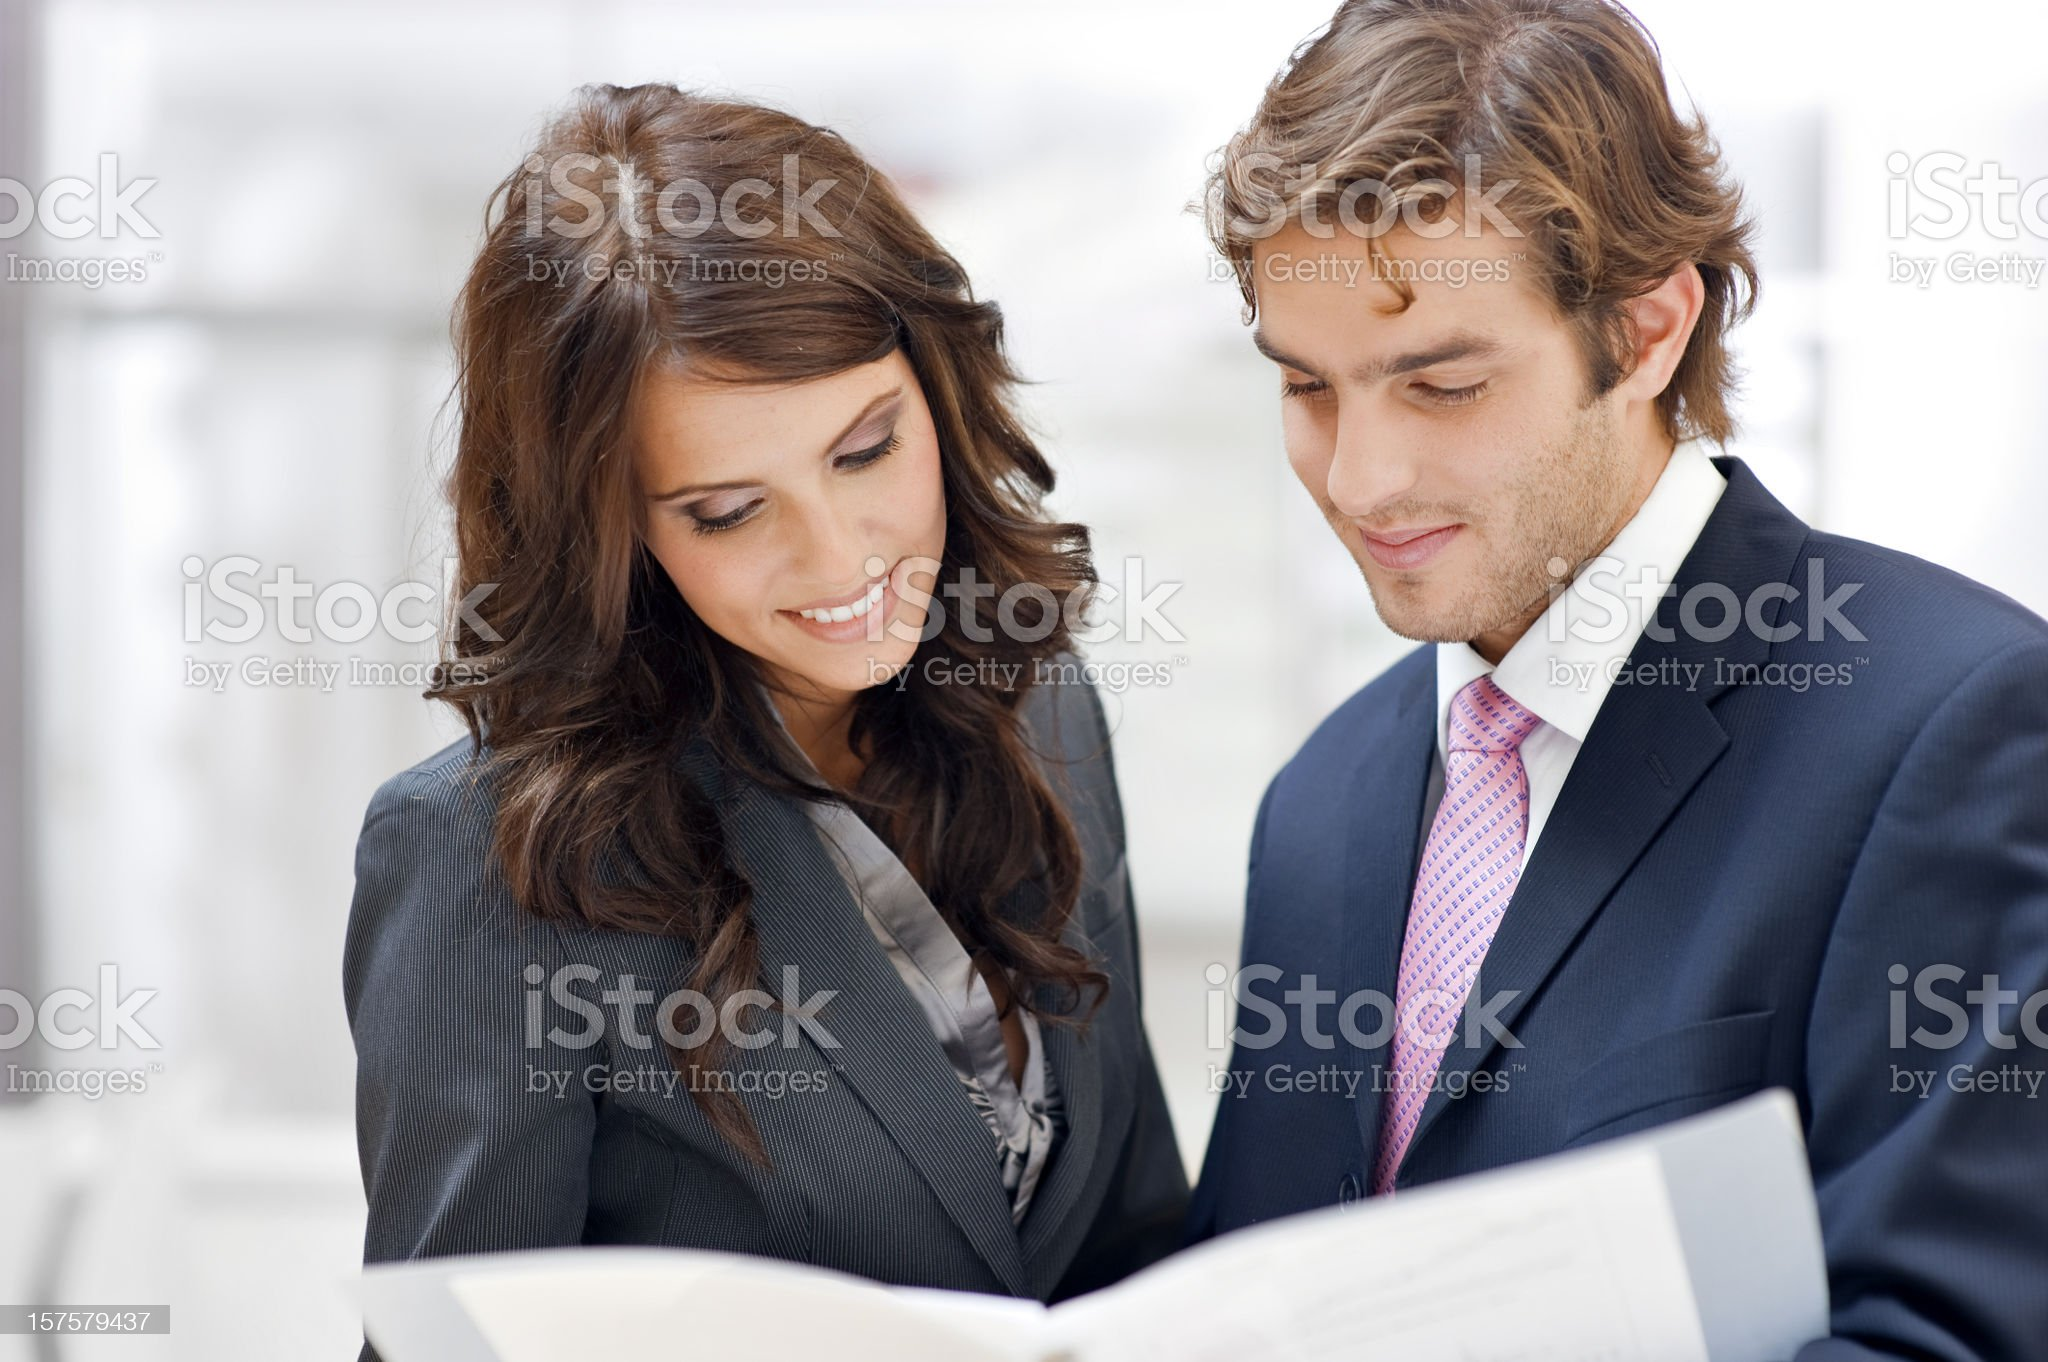 Two business people consulting royalty-free stock photo